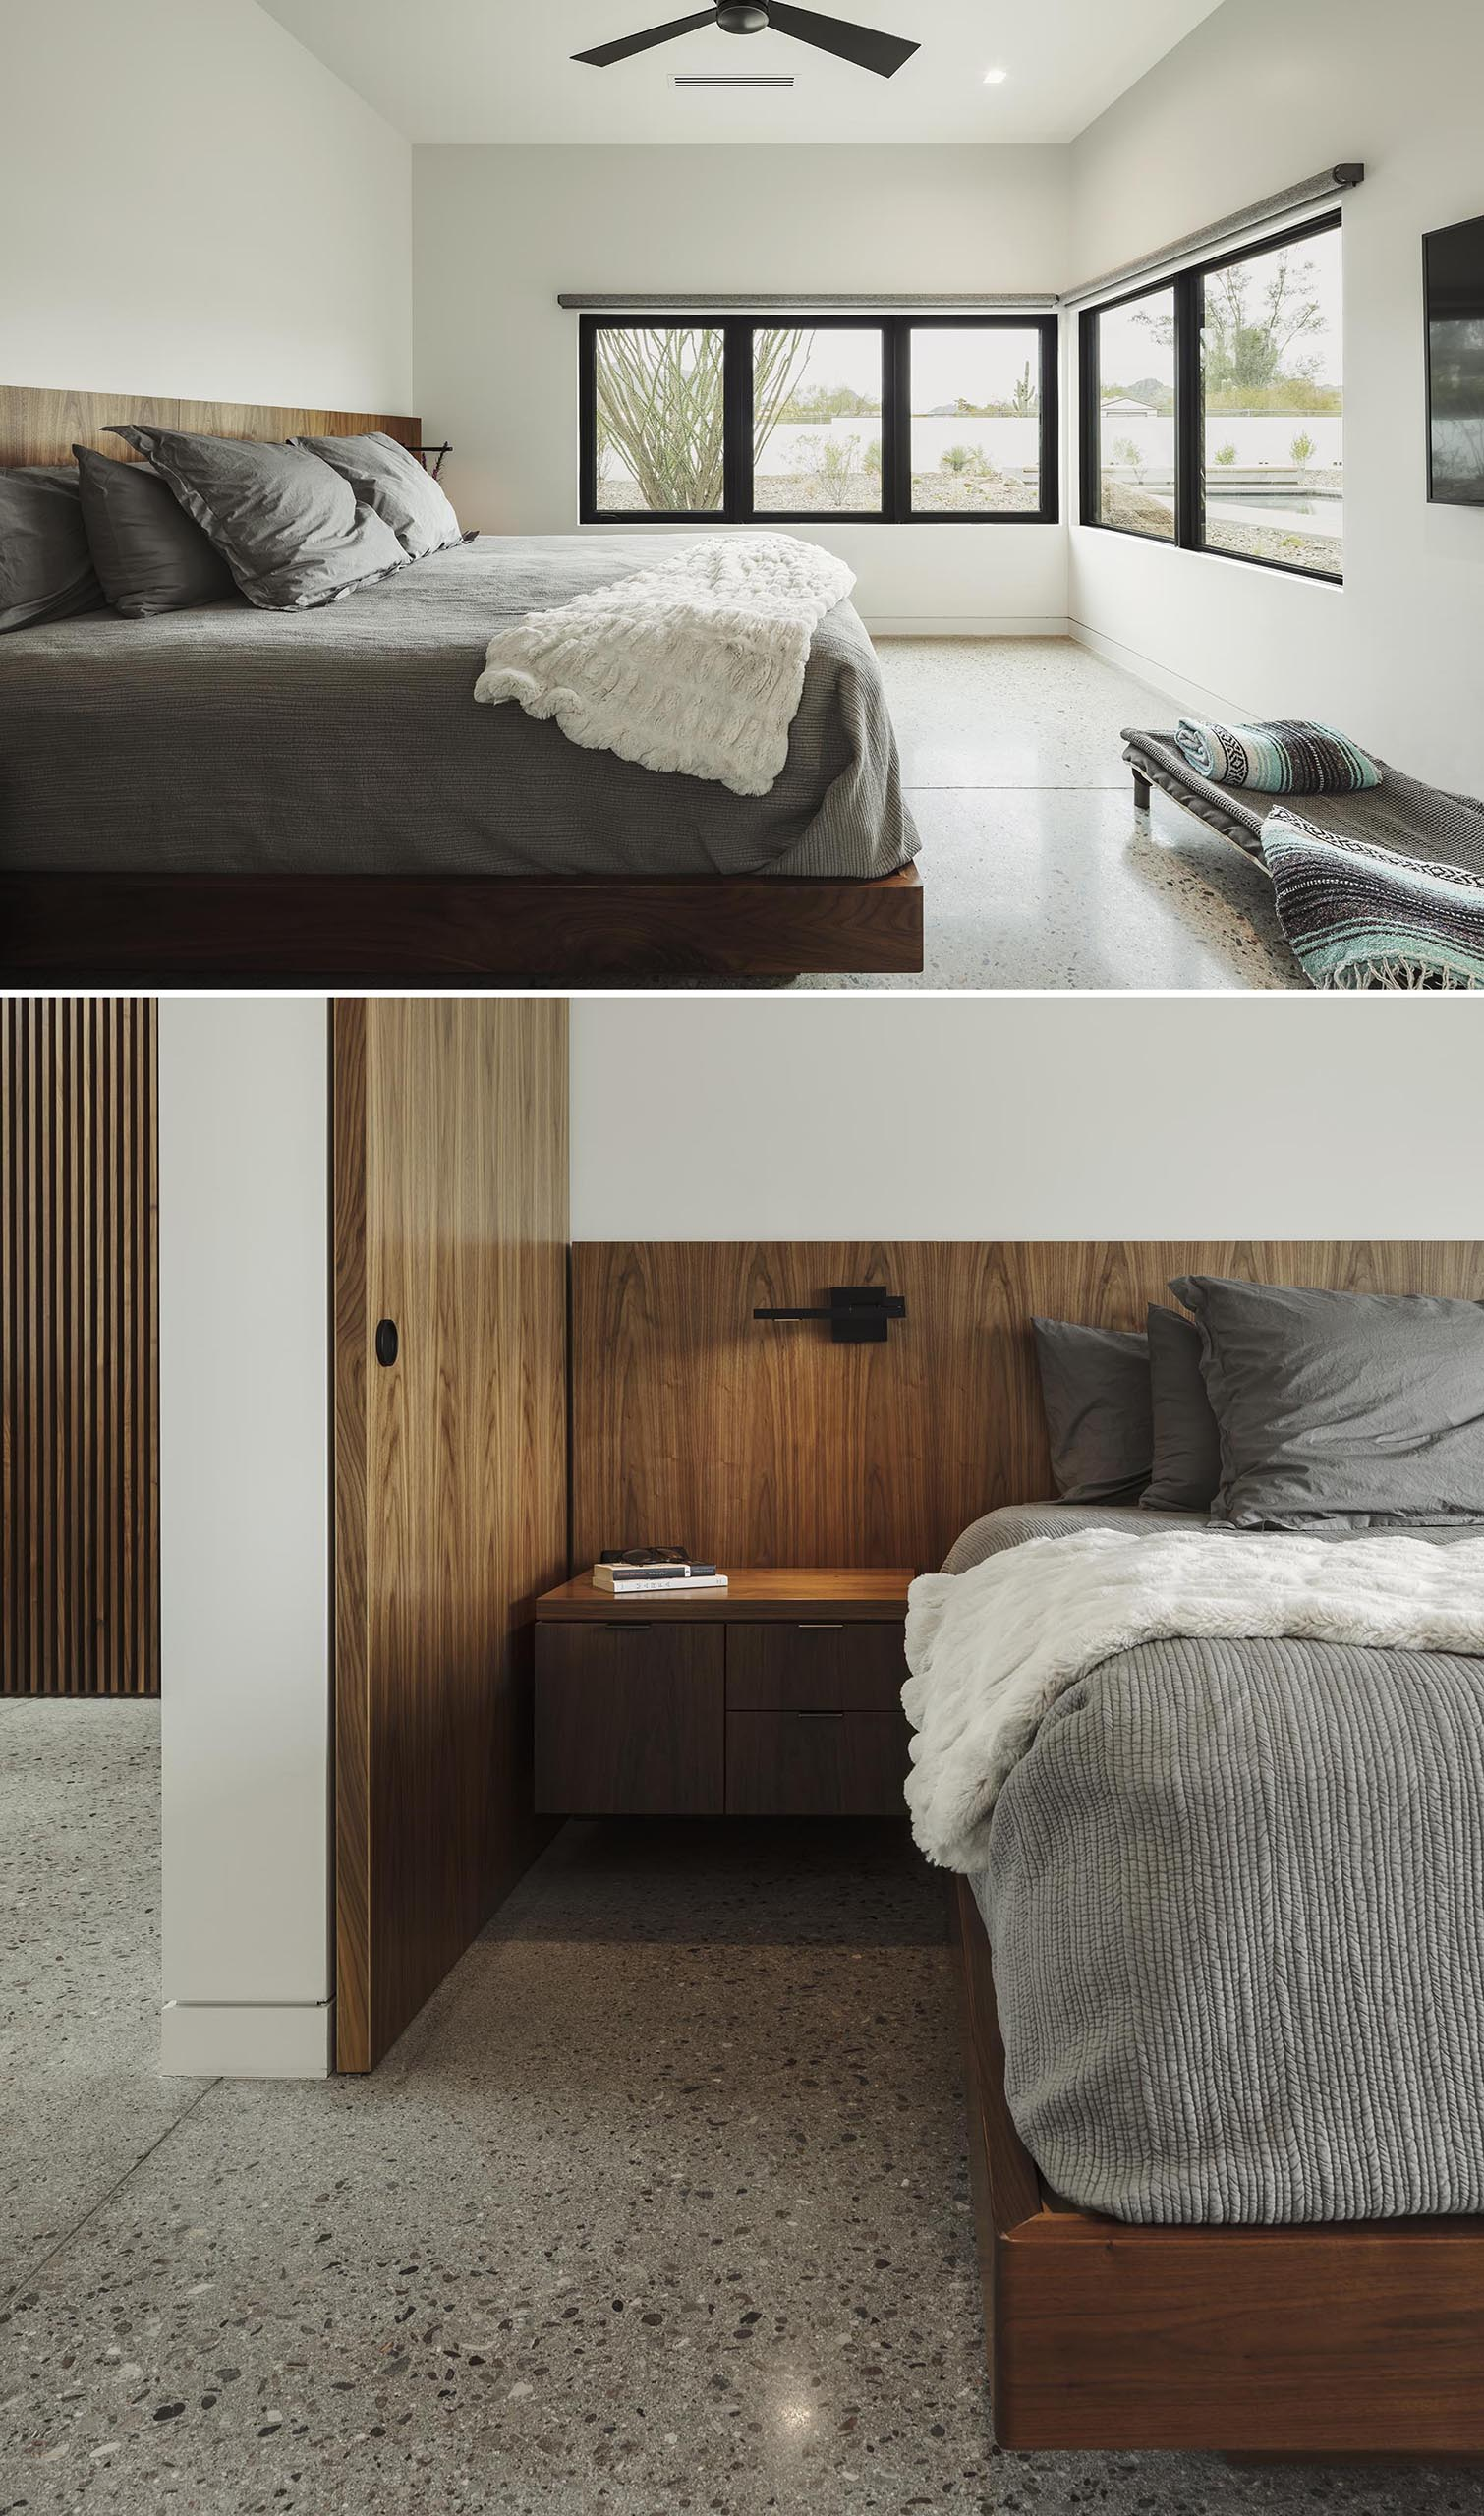 A minimalist master bedroom with a built-in wood bed frame and headboard.